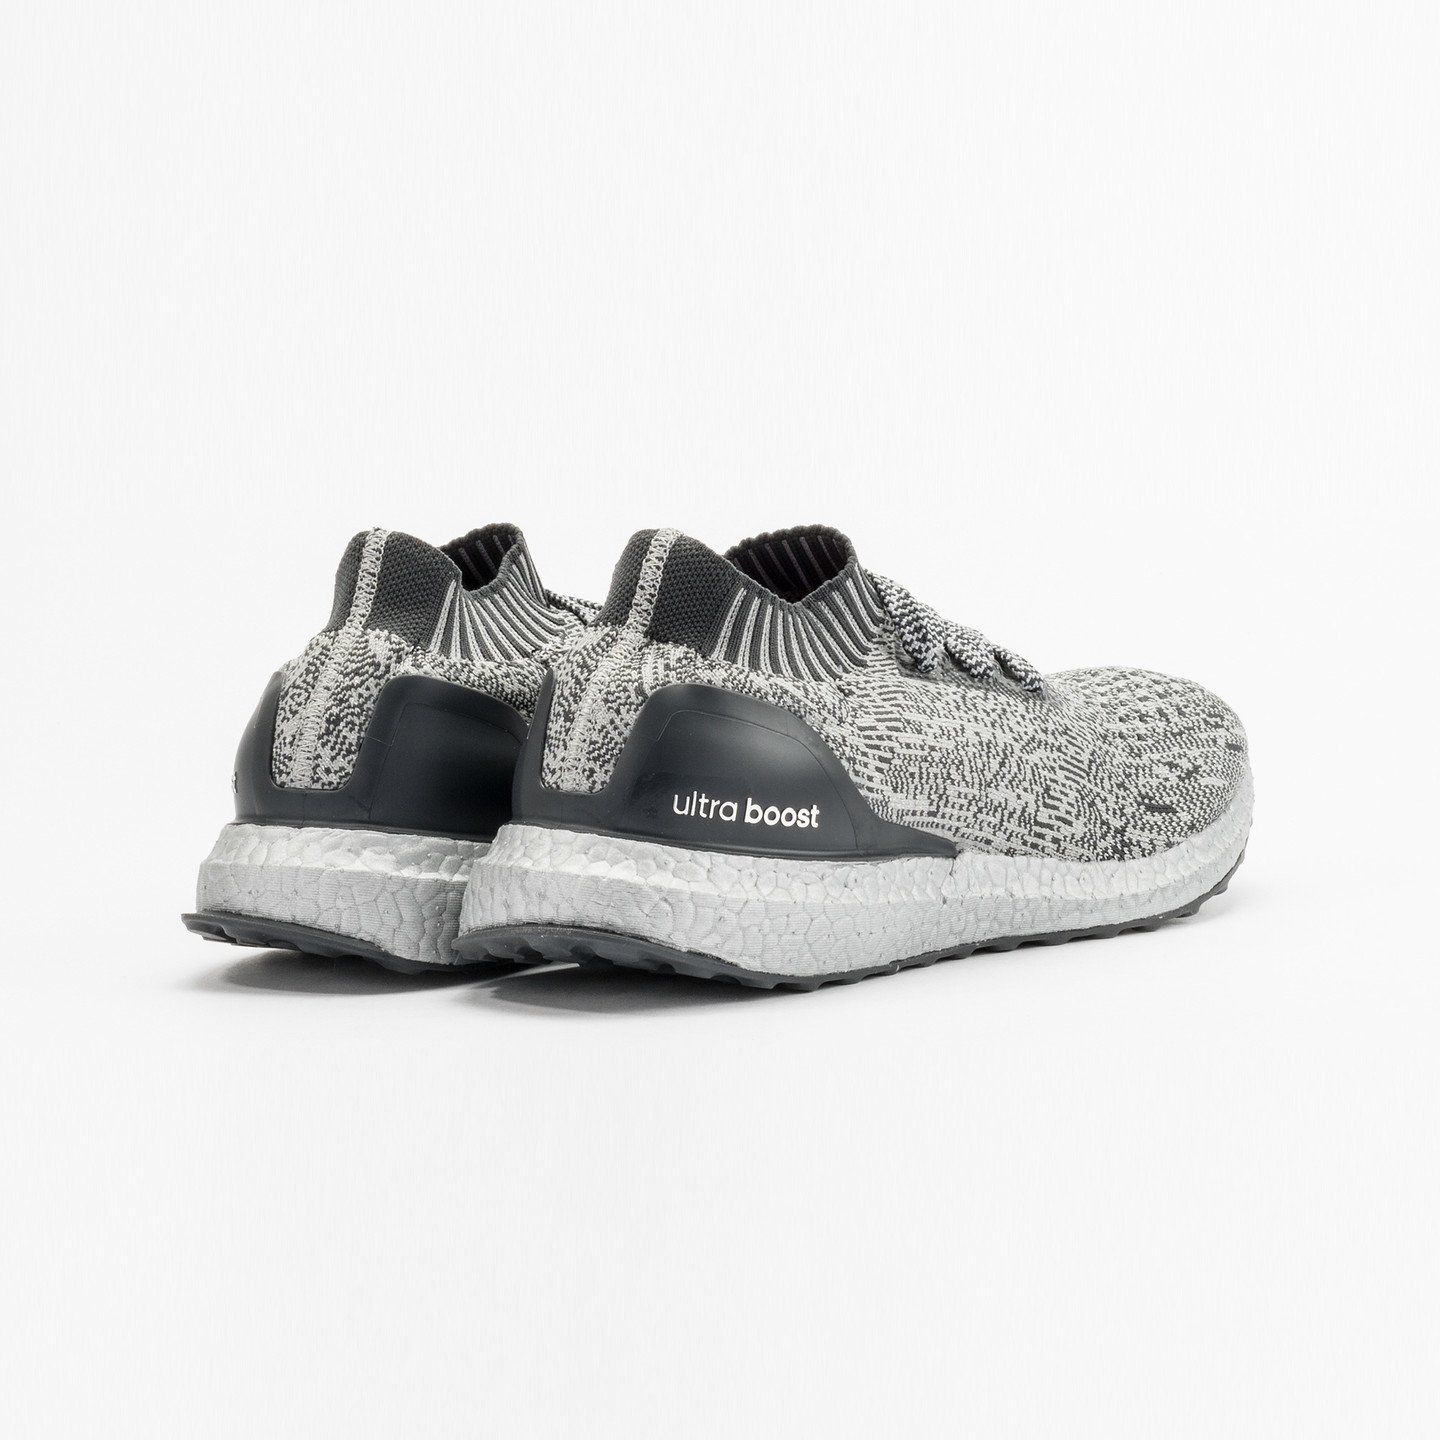 Adidas Ultra Boost Uncaged 'Super Bowl' Silver Grey BA7997-47.33